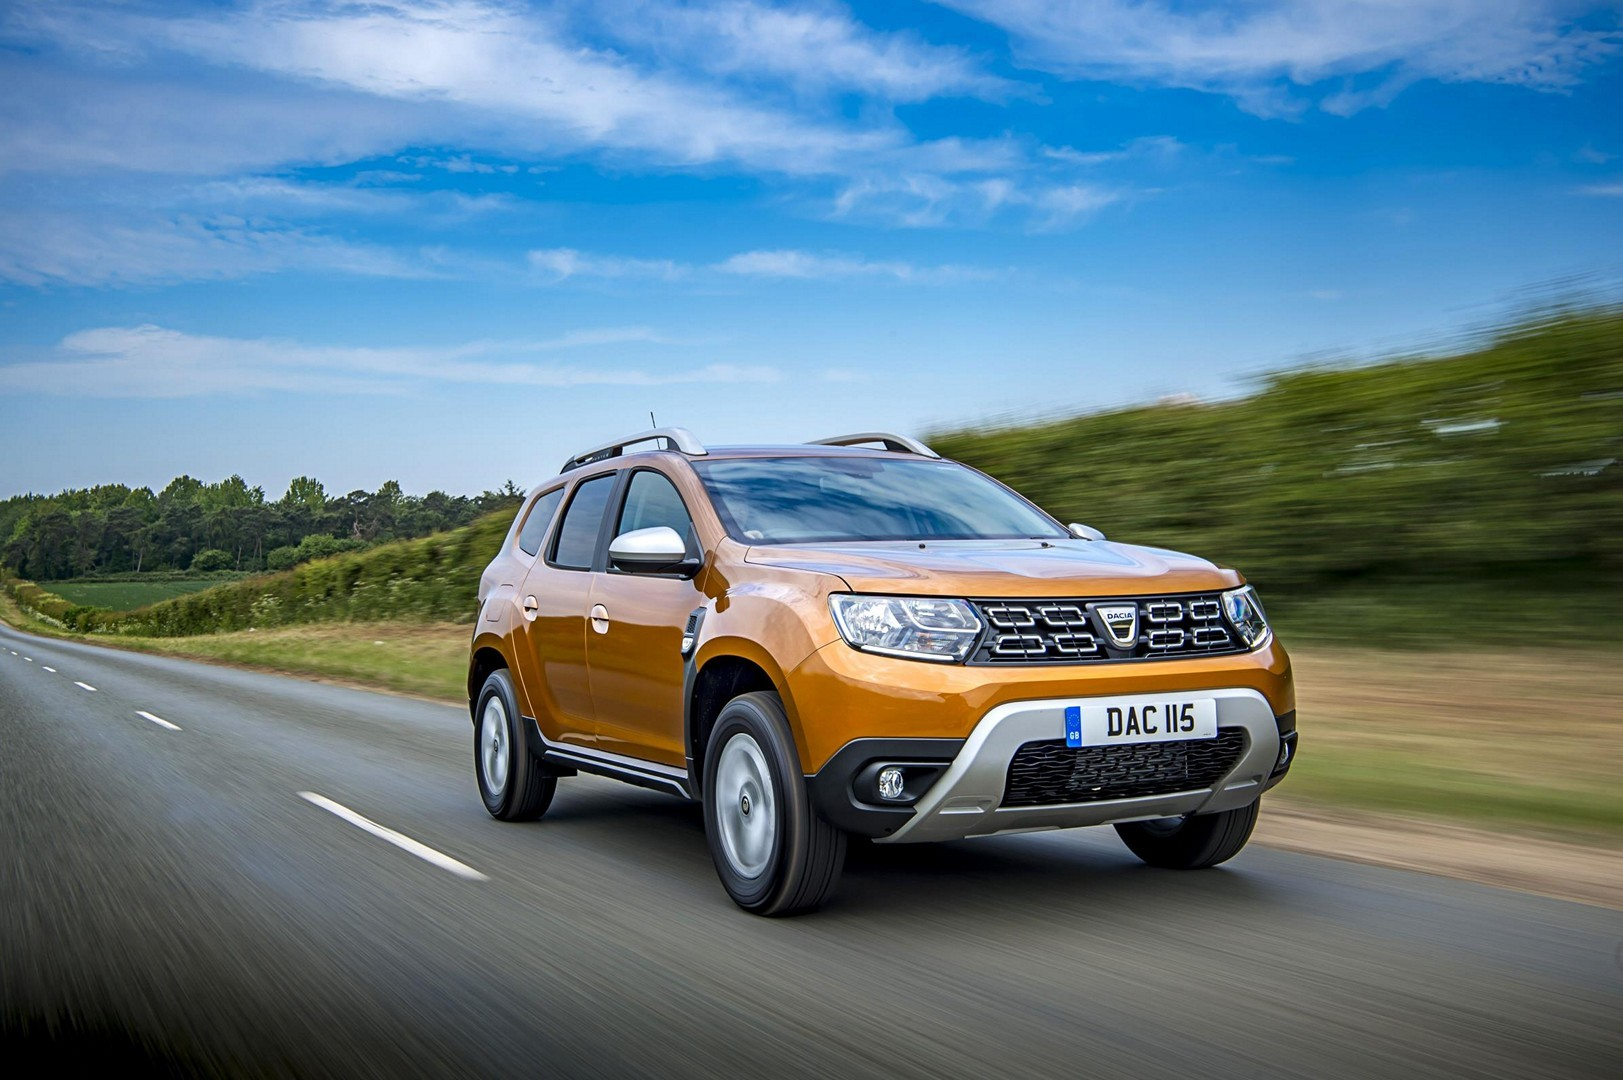 2019 dacia duster uk spec detailed in new photos and. Black Bedroom Furniture Sets. Home Design Ideas